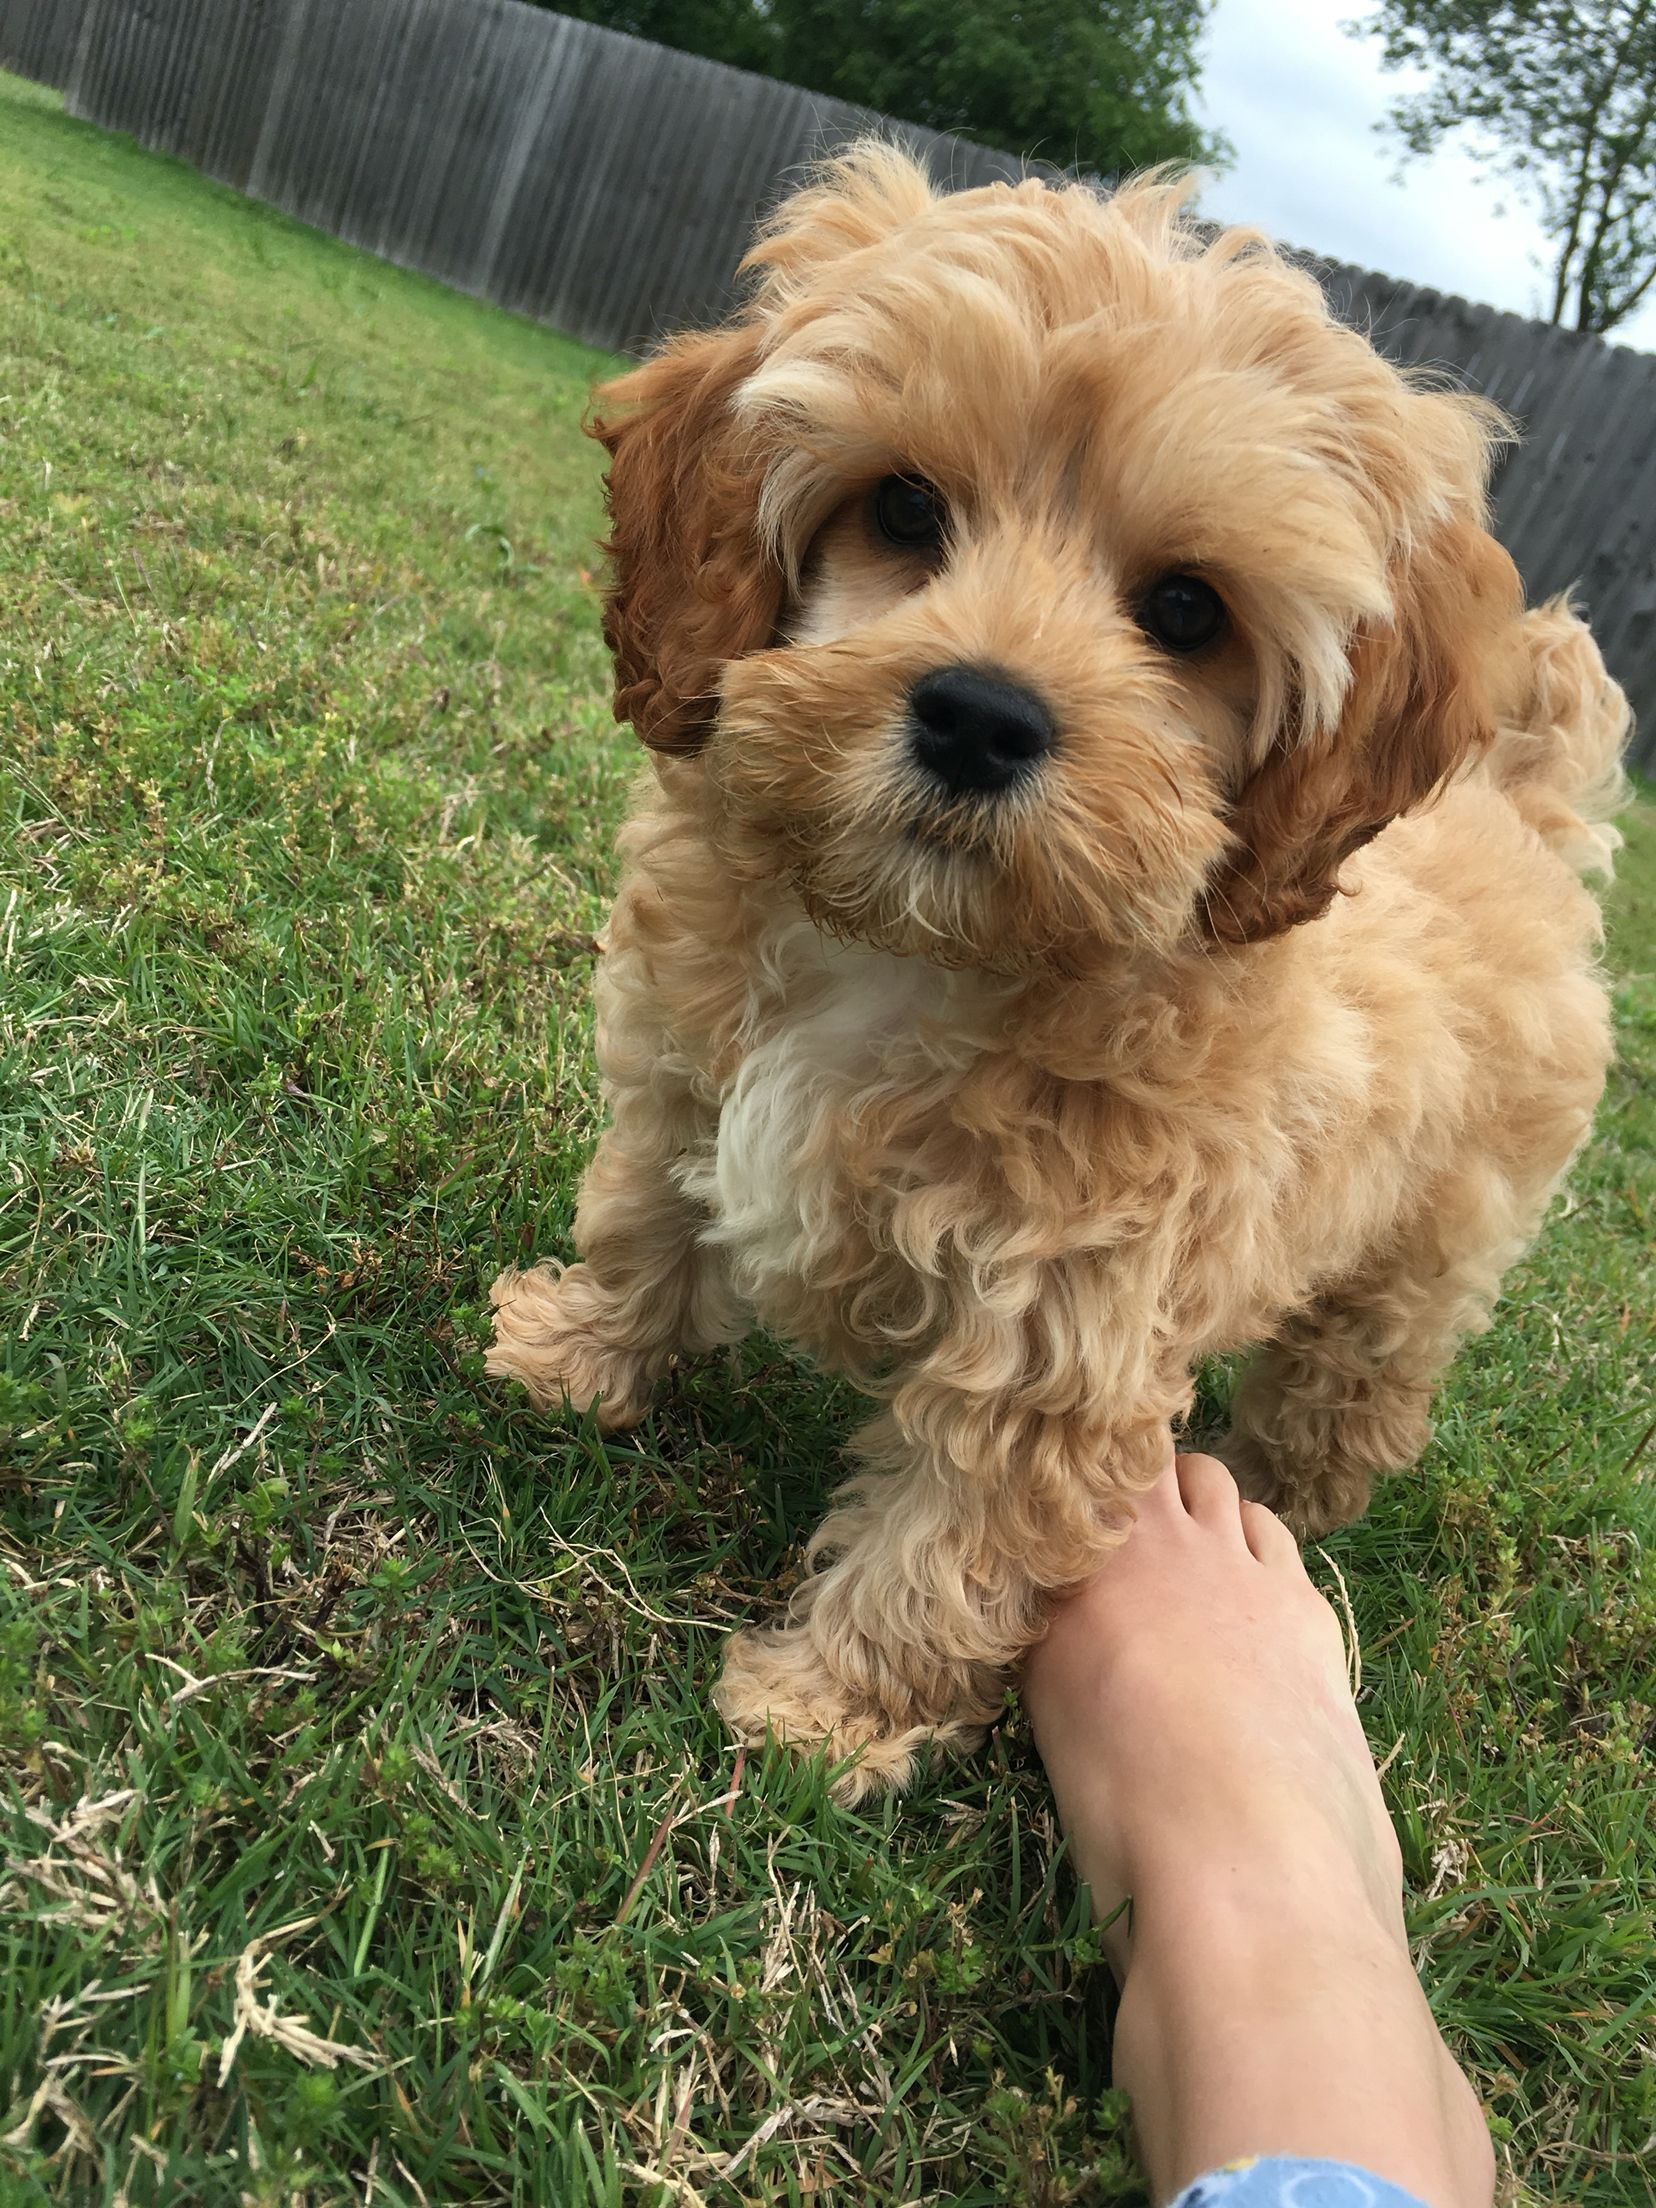 Yorkie Poo The Cutest And Adorable Mix Of Yorkie And Poodle Dog